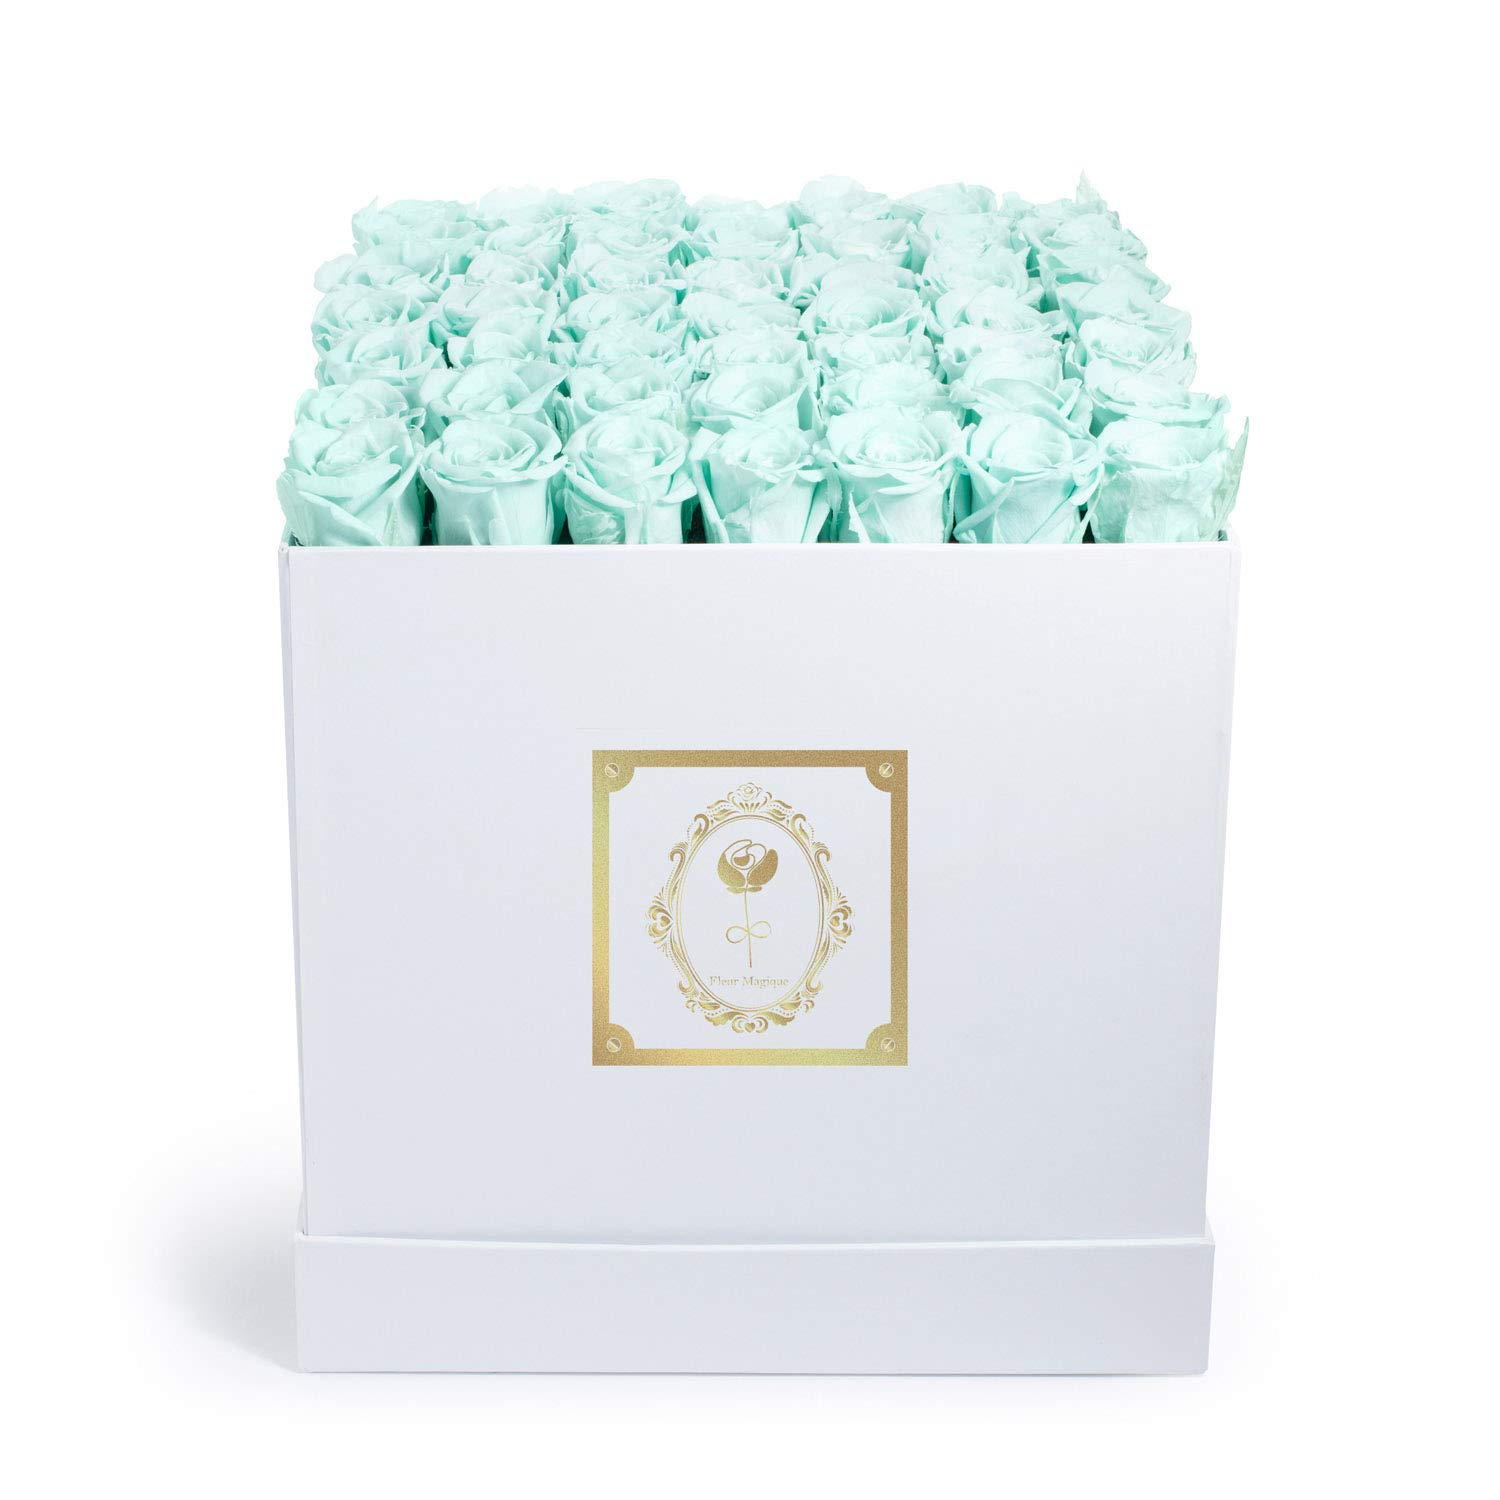 Fleur Magique | Preserved Flowers - Luxury Roses Large Square Classic White Box - Baby Blue Roses